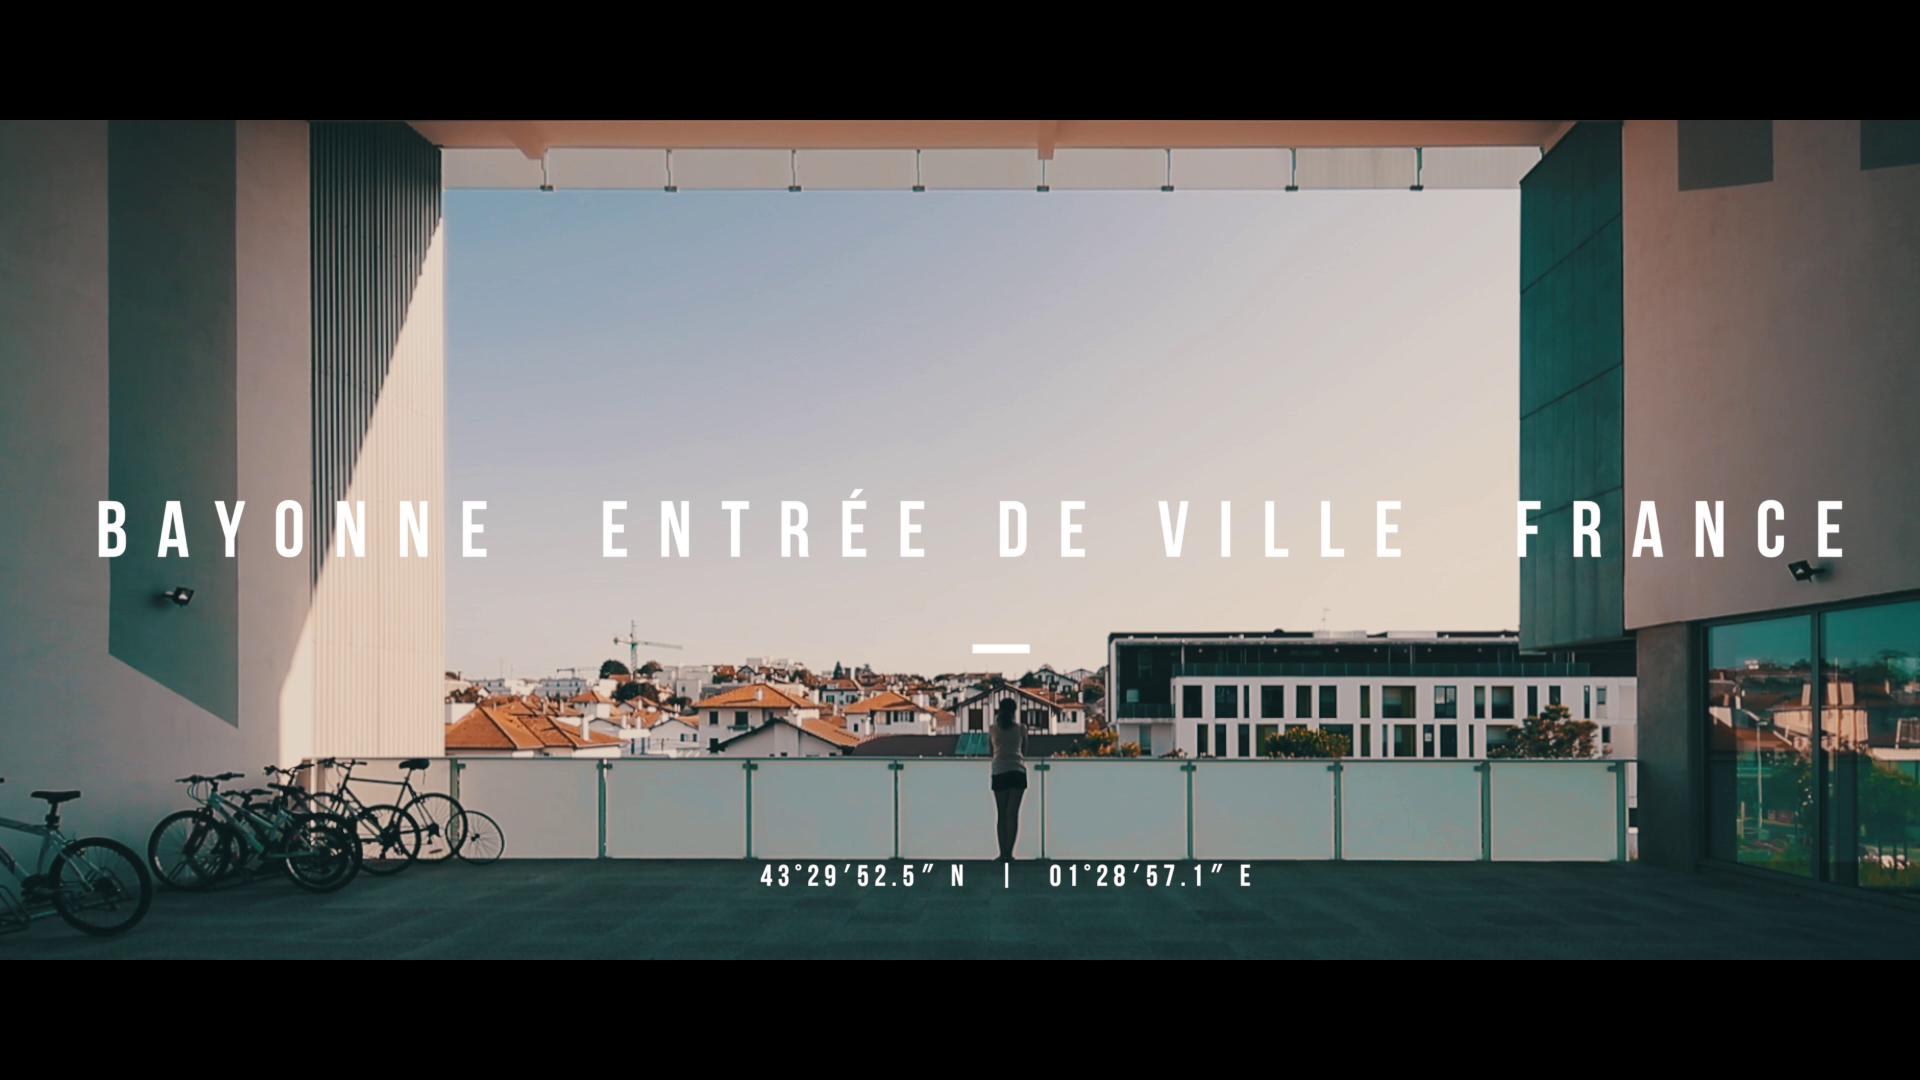 The Film of Bayonne. Entrée de Ville. France